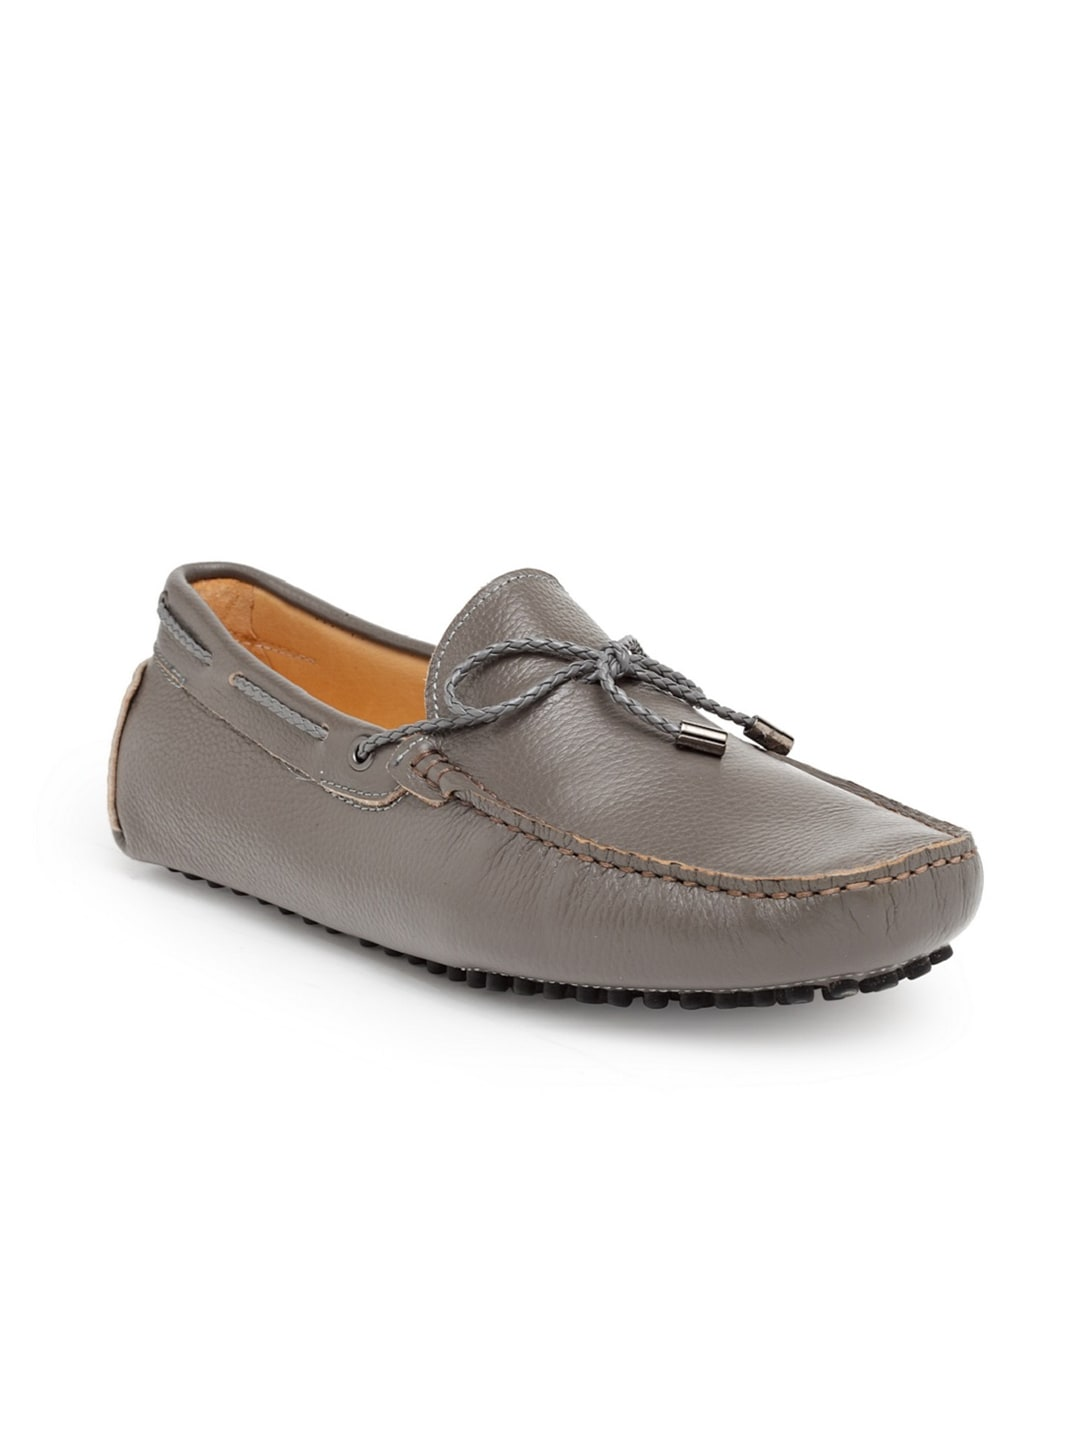 da111b87aad Buy Louis Philippe Men Tan Brown Leather Loafers - Casual Shoes for ...